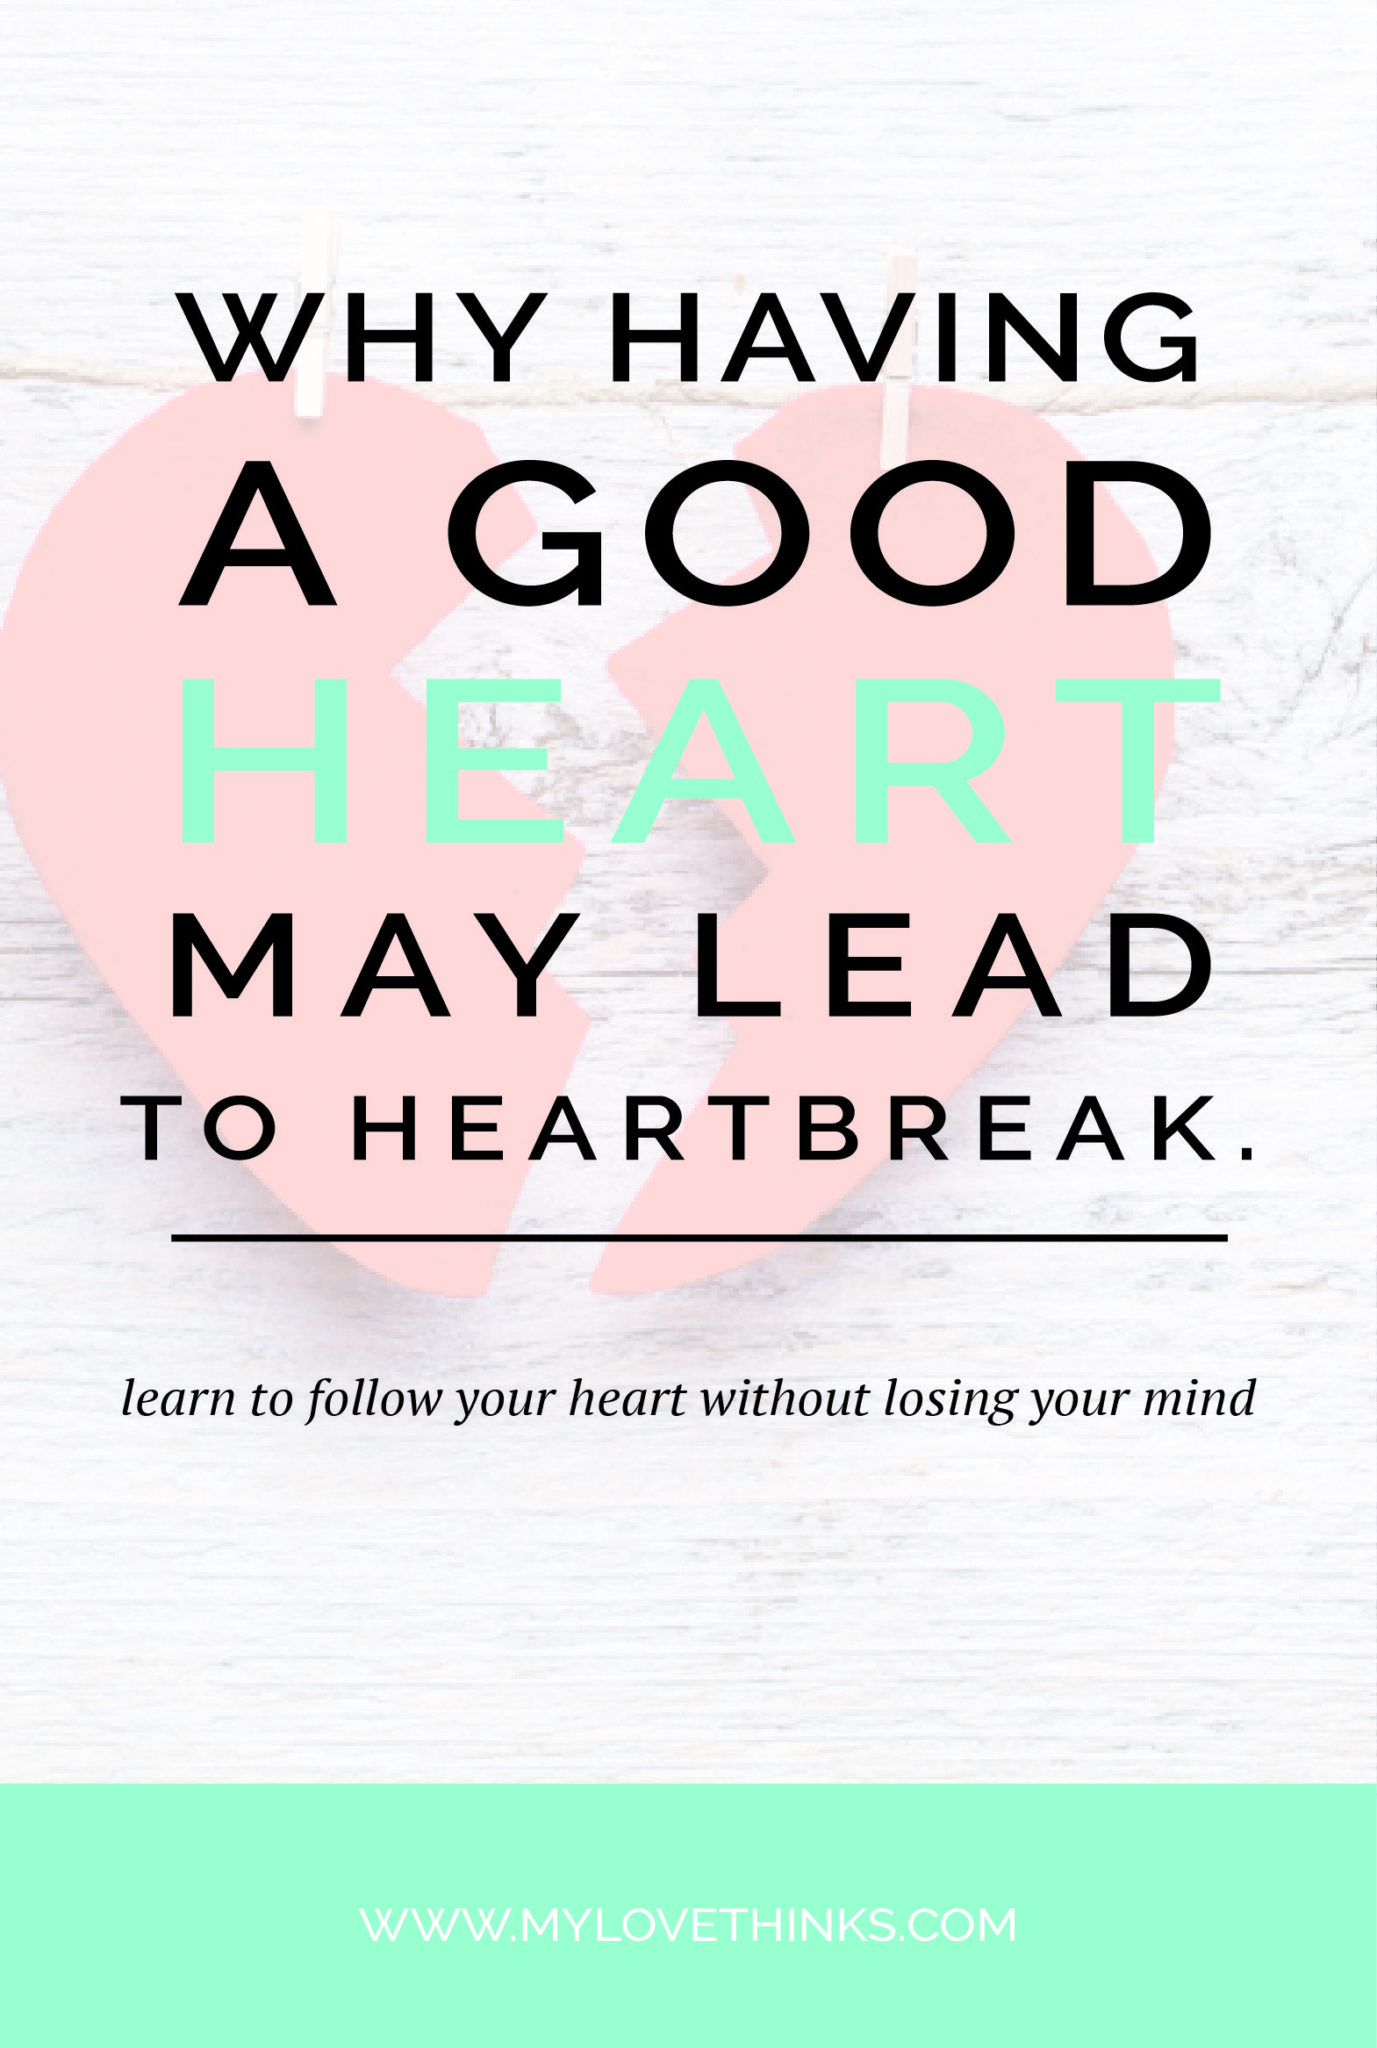 why having a good heart may lead to heartbreak